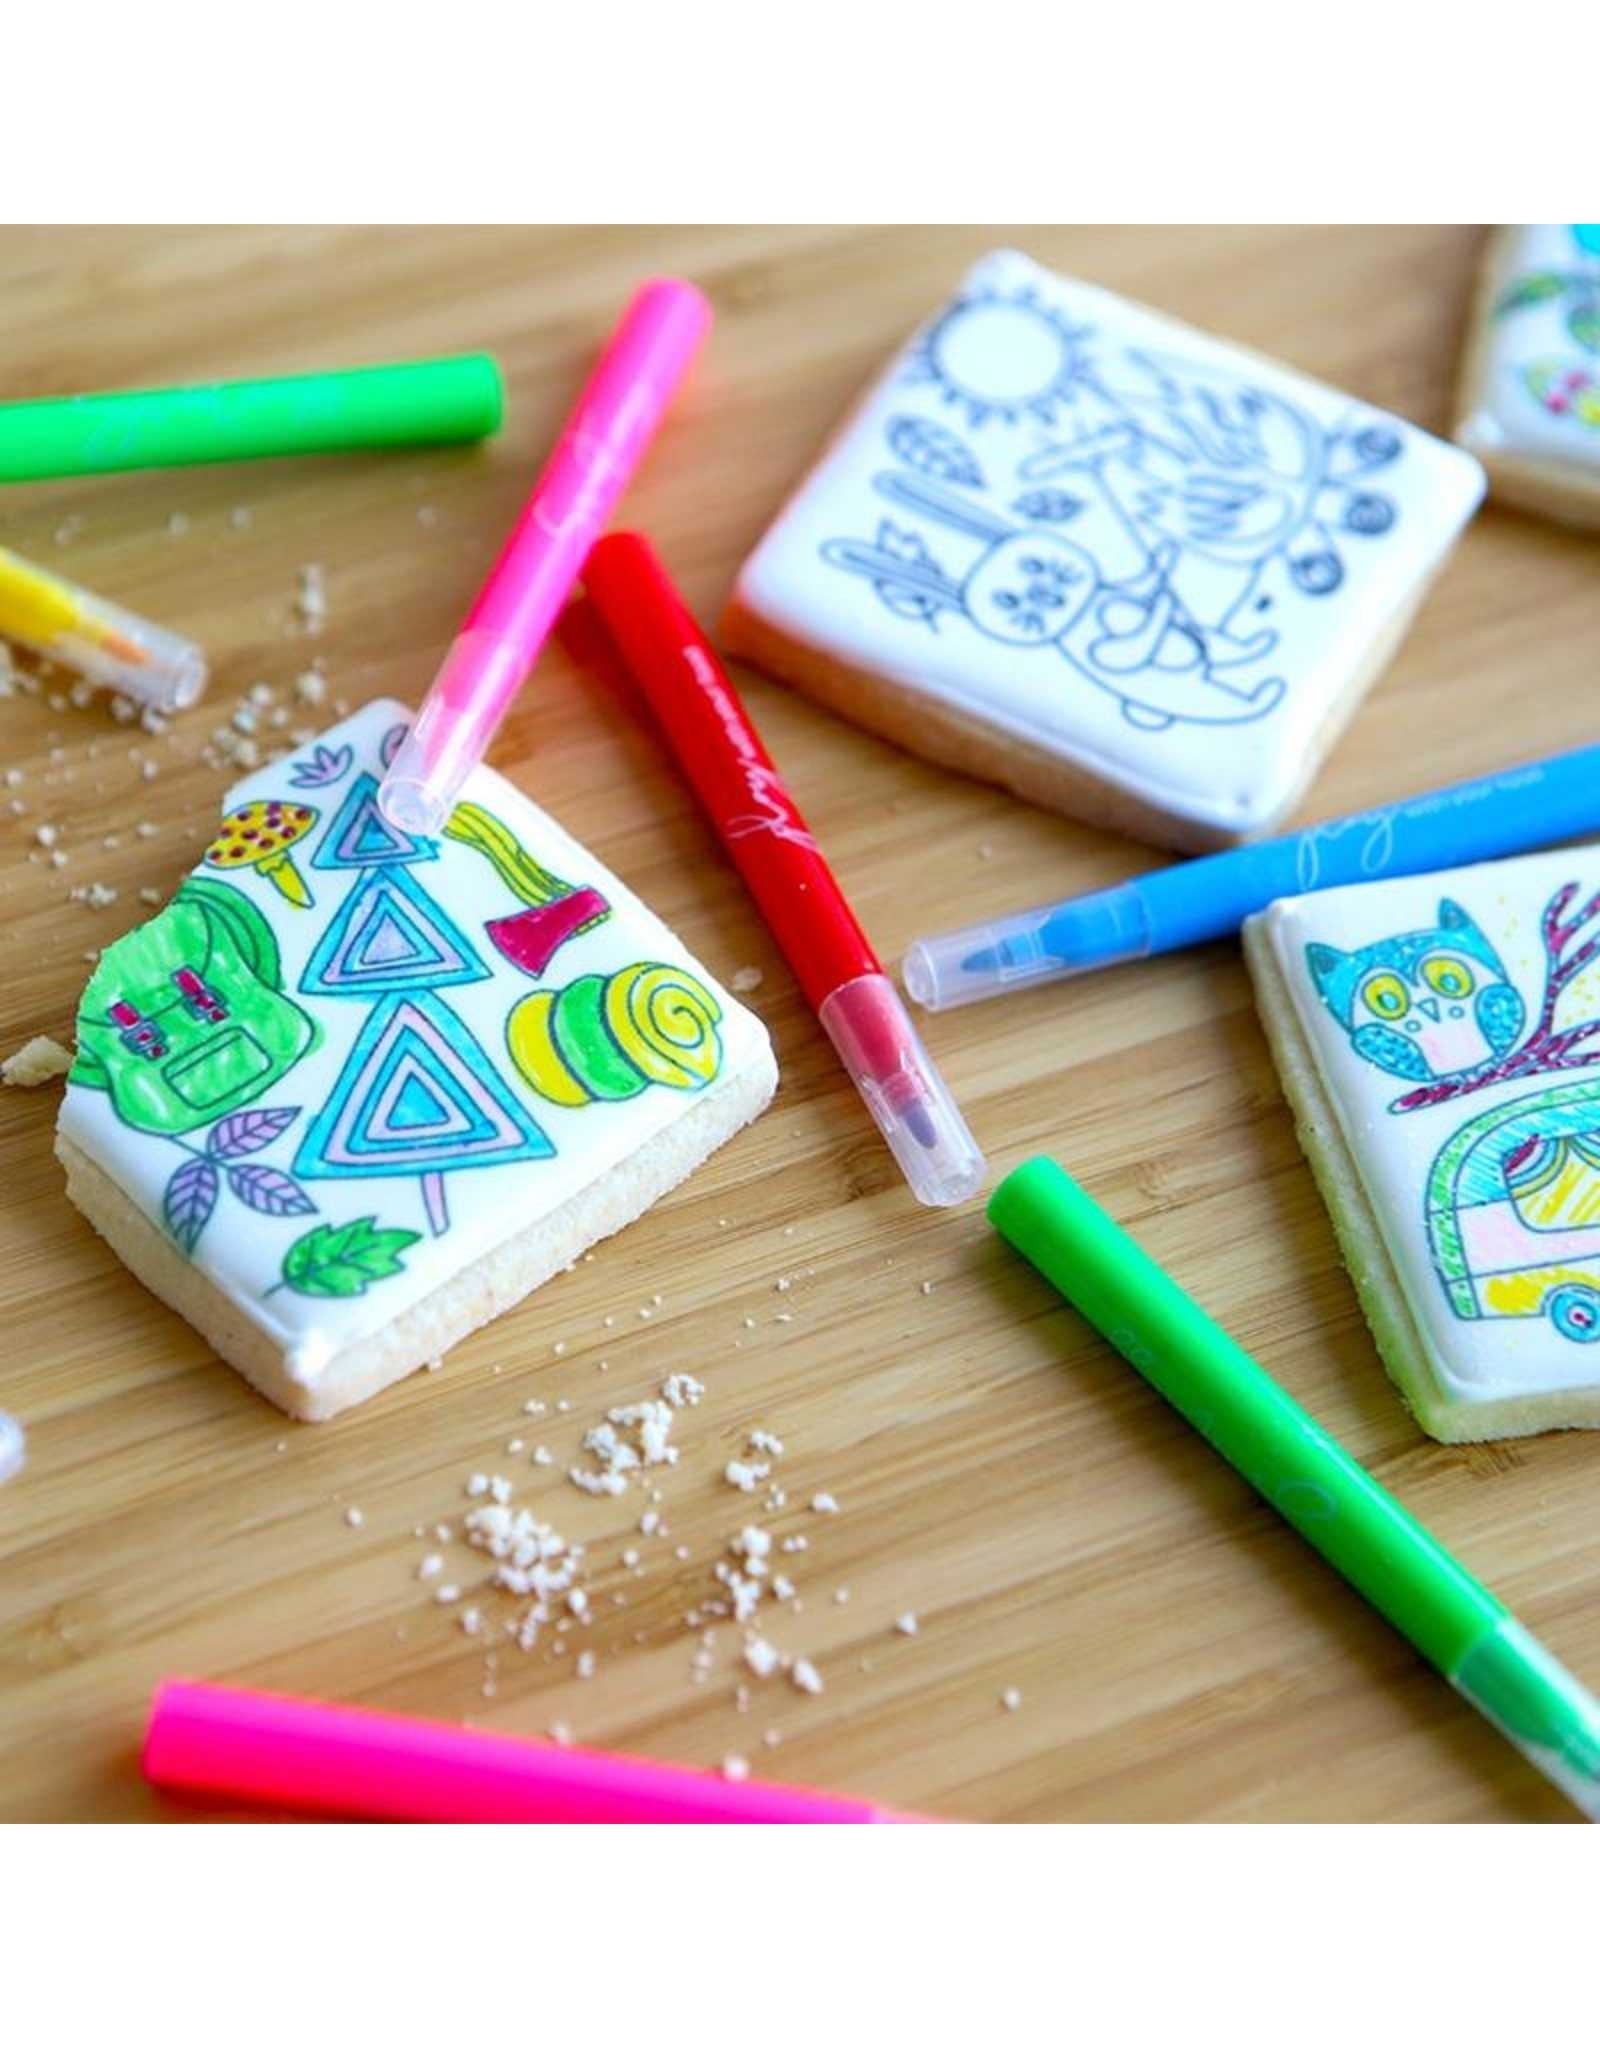 Sweetness Colouring Sugar Cookies - Great Outdoors